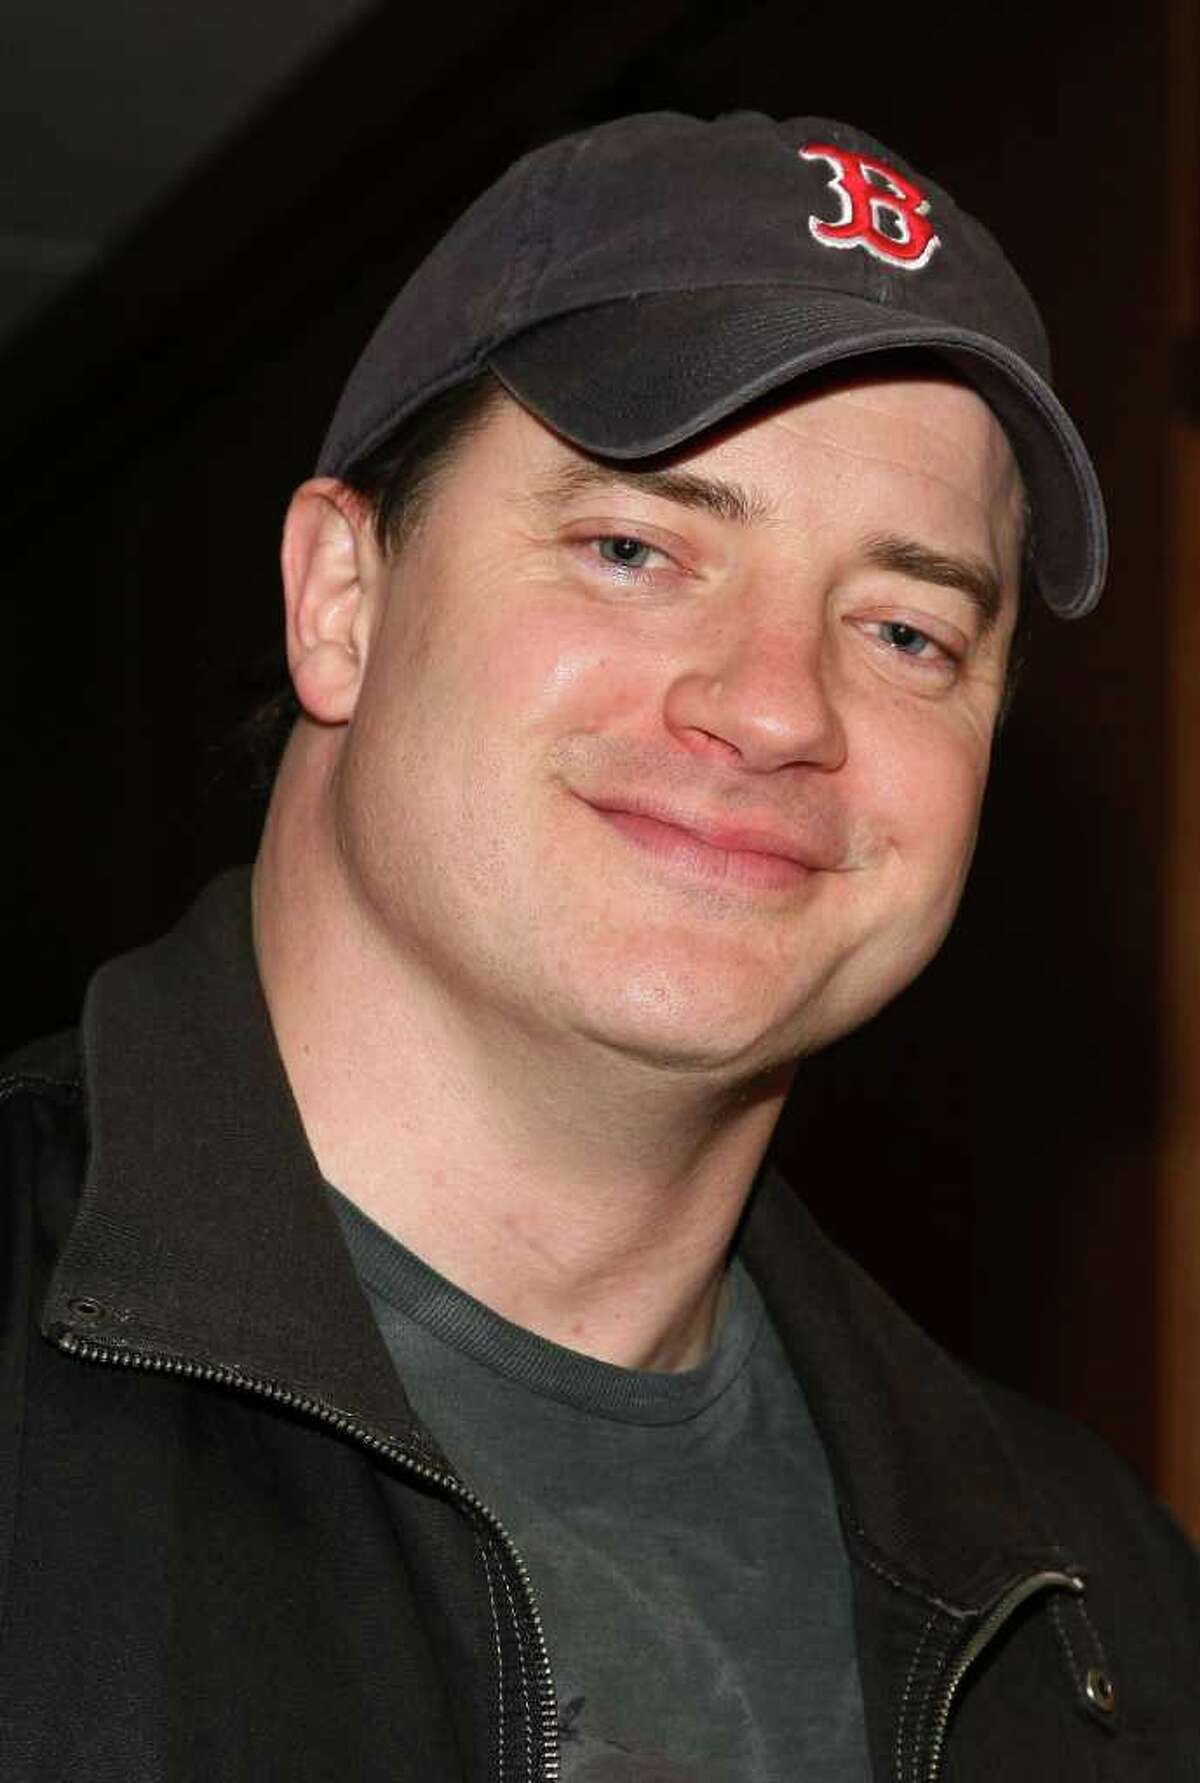 """Actor Brendan Fraser attends AMPAS Presents """"Acting In The Digital Age"""" in Beverly Hills, Calif. April 22, 2010. Fraser, a Greenwich resident, was seen having dinner at the Ginger Man on Greenwich Avenue last week. (Photo by Valerie Macon/Getty Images)"""